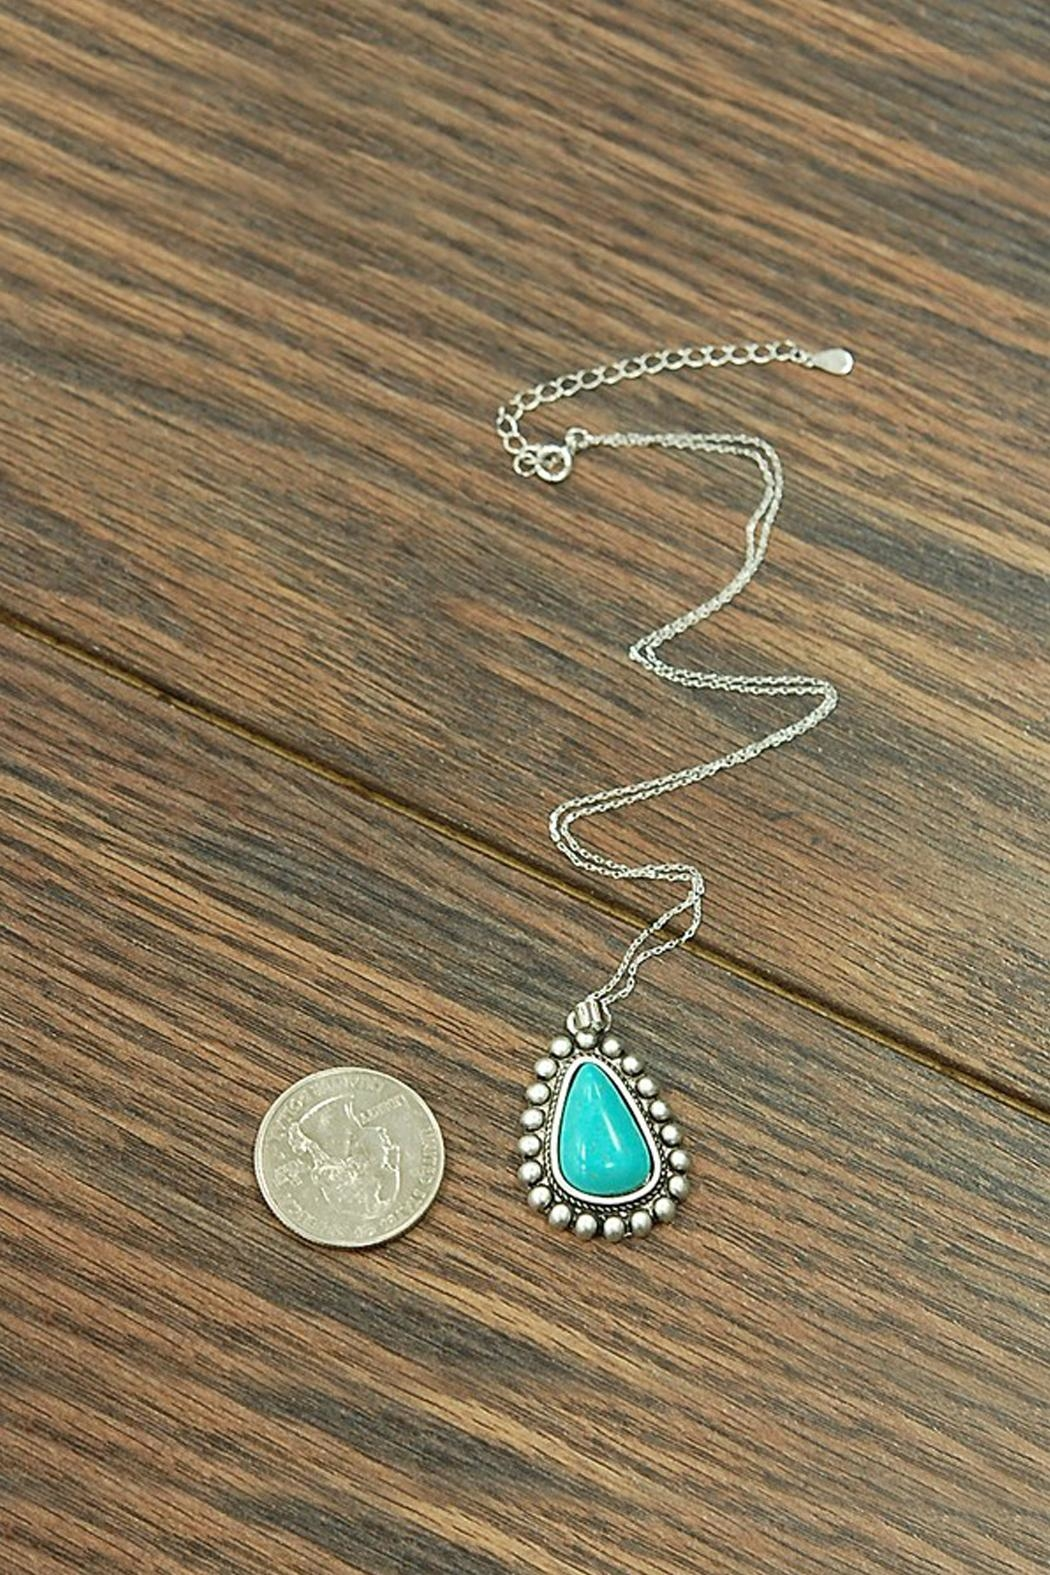 JChronicles Sterling-Silver-Chain-Necklace With Natural-Turquoise-Pendant - Front Full Image